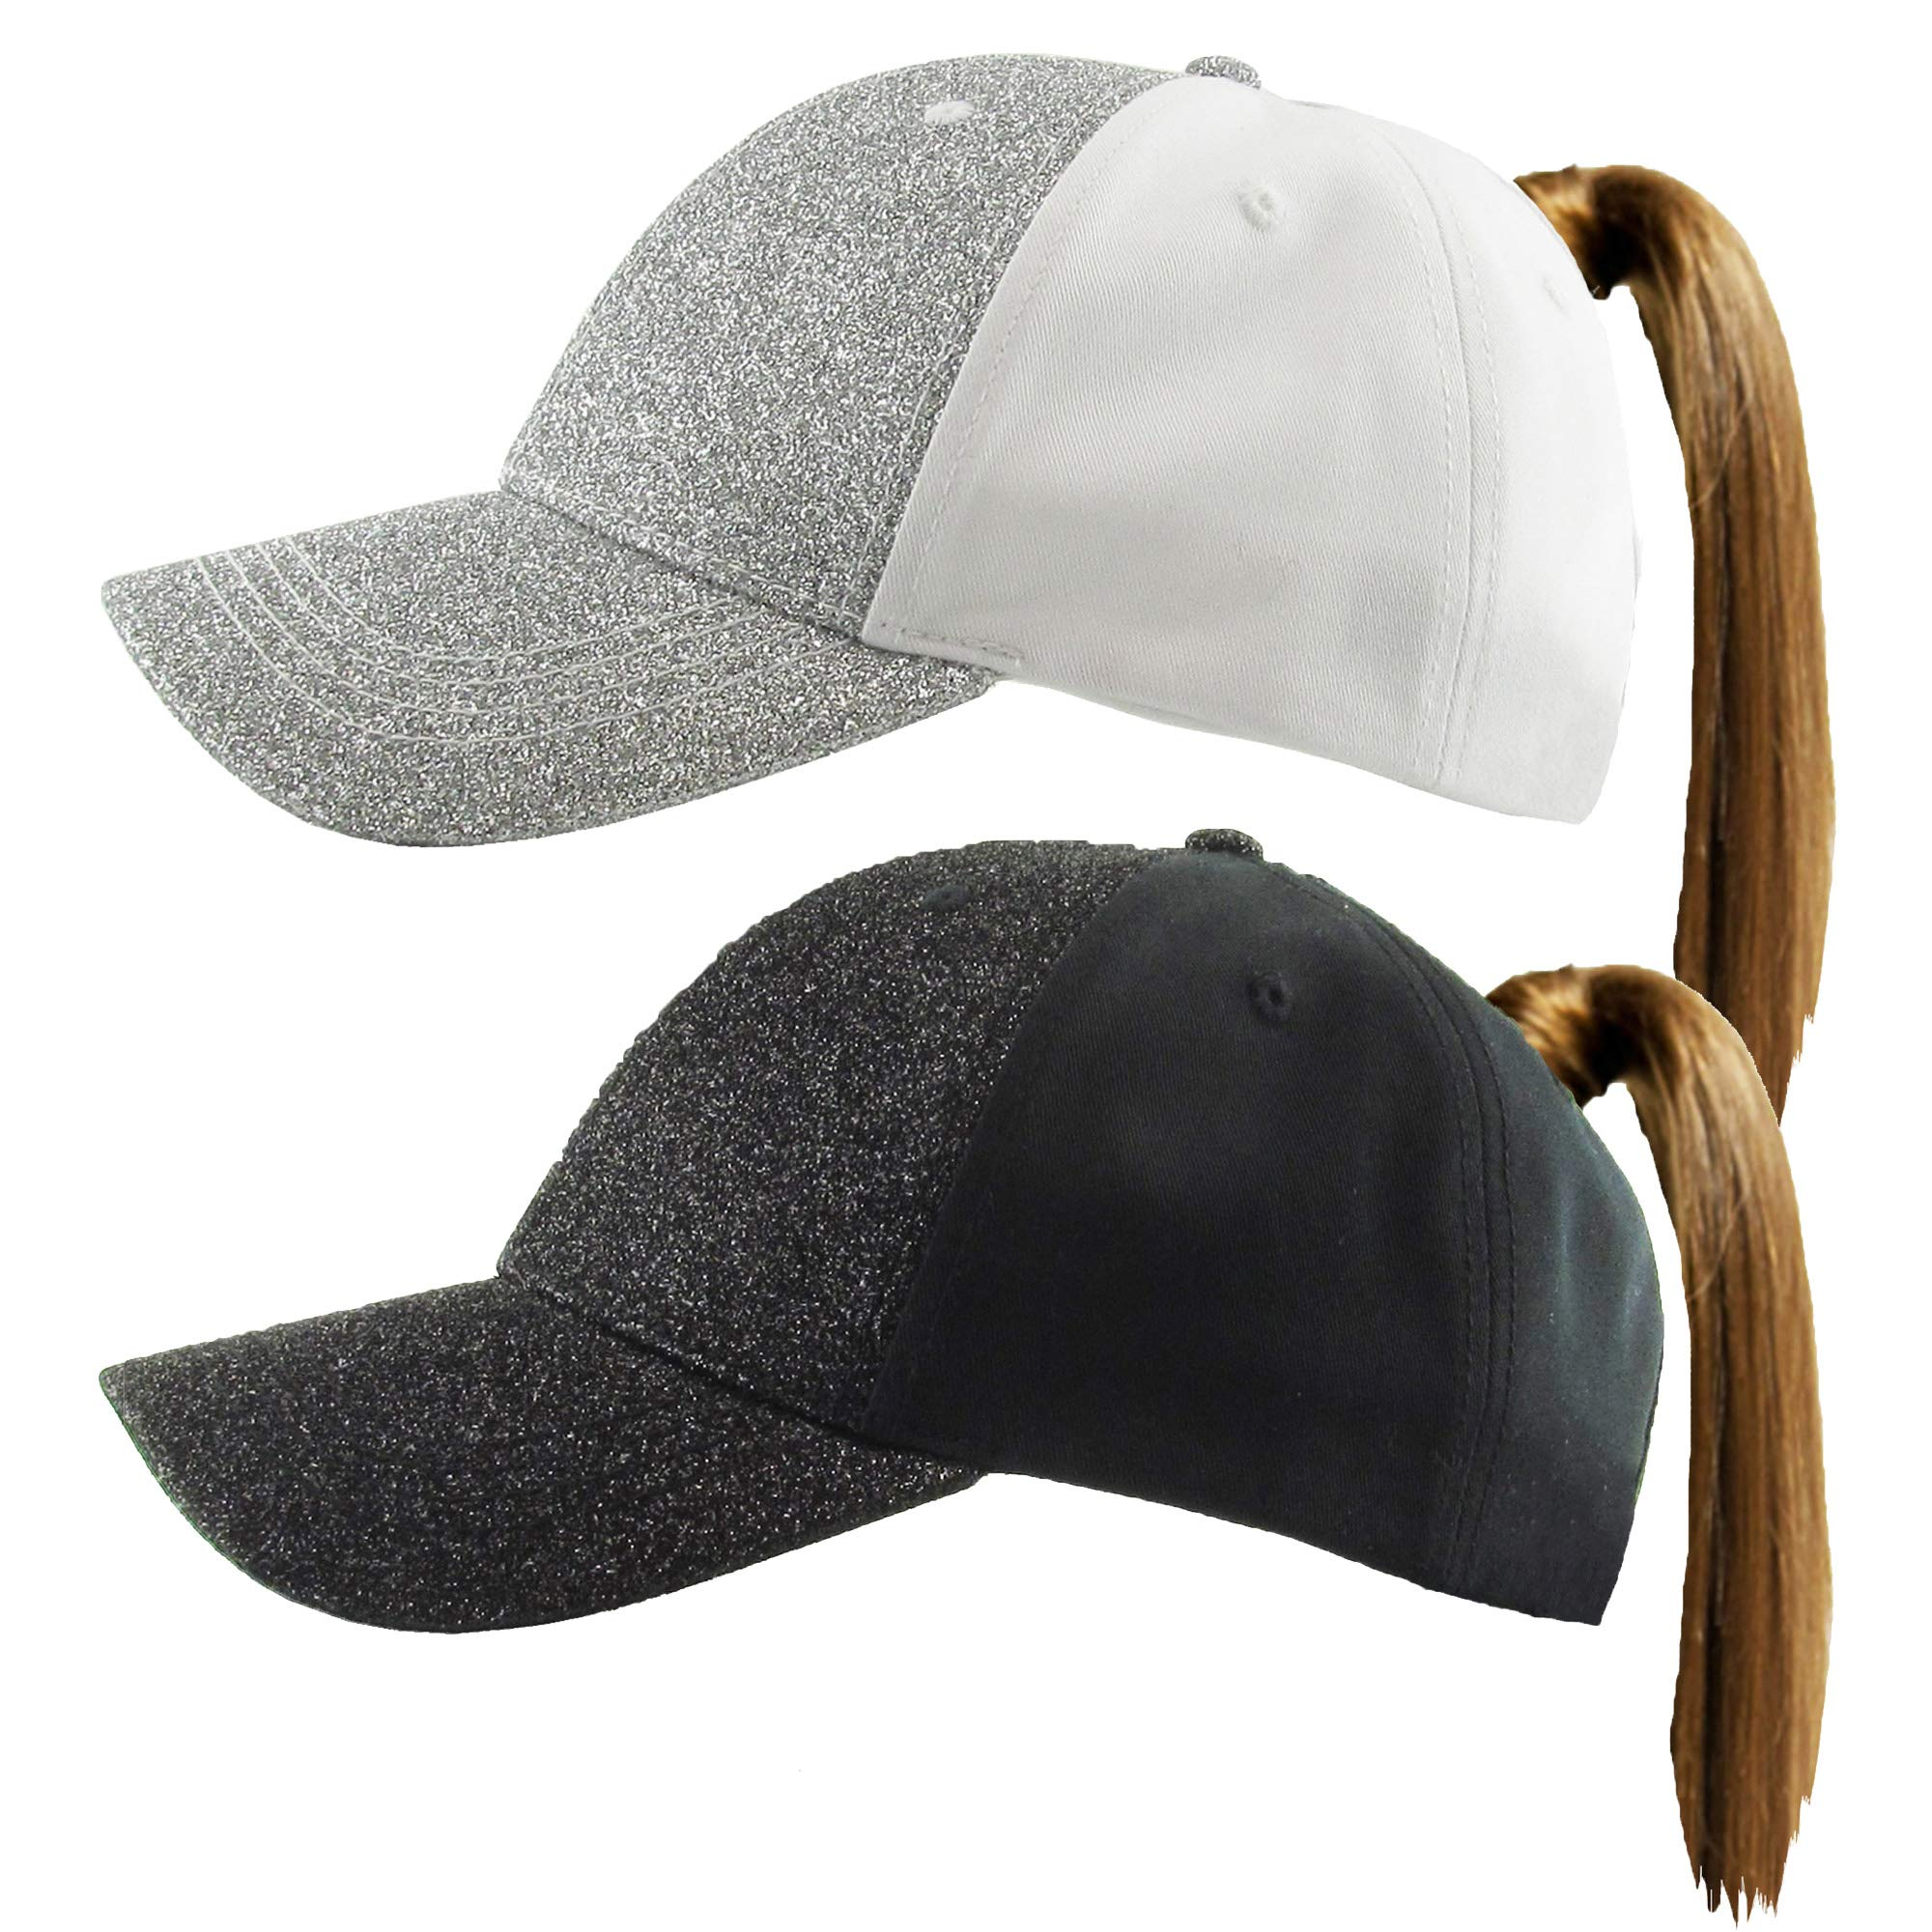 H-216-2-GS0106 GLITTER Ponycap 2-Pack: Solid Silver & Black